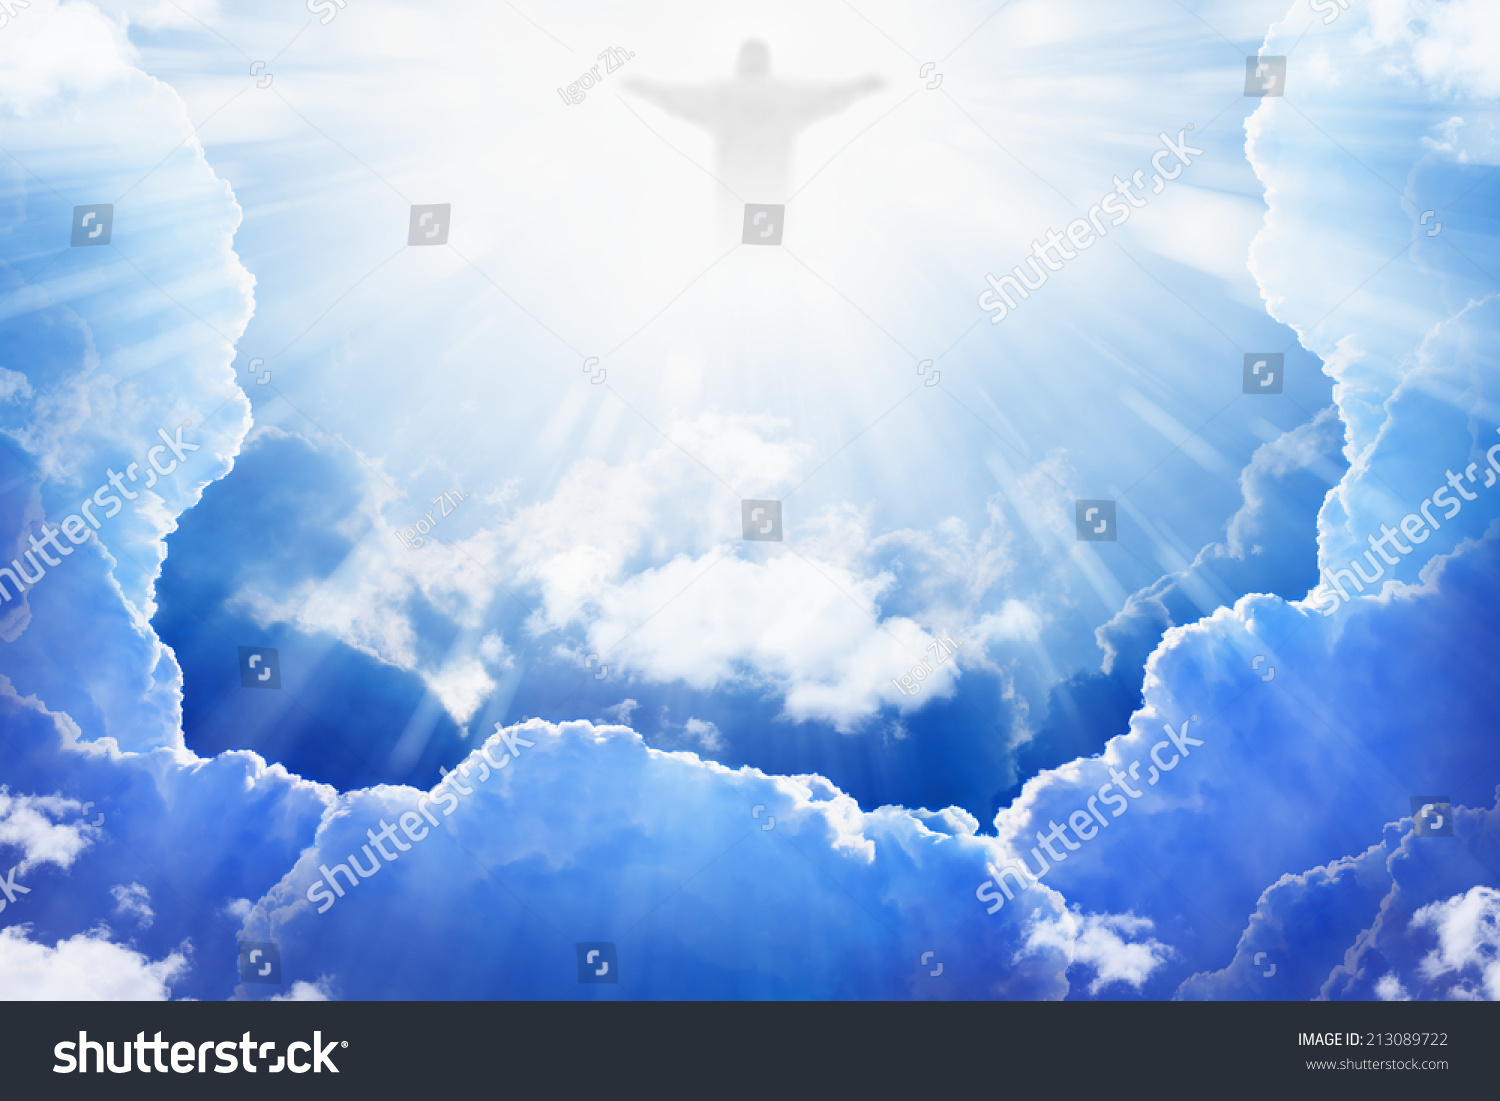 Jesus Christ Blue Sky Clouds Bright | Religion Stock Image 213089722